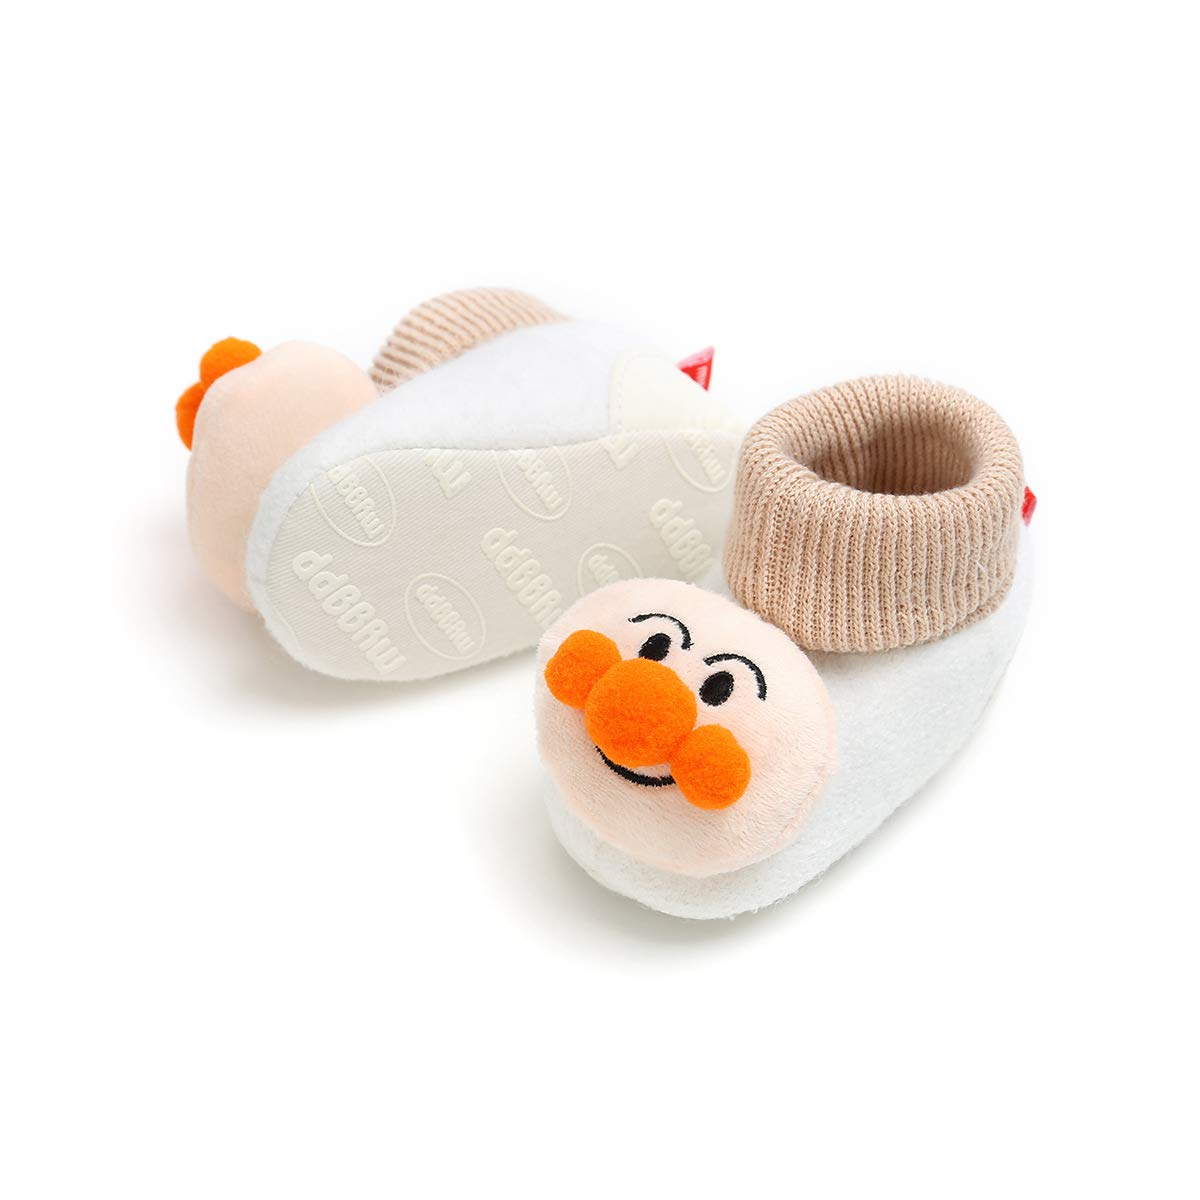 Newborn Baby Girls Boys Cartoon Cozy Fleece Sole Ankle Bootie,Slippers Warm Fur Infant Prewalker Toddler Snow Boots